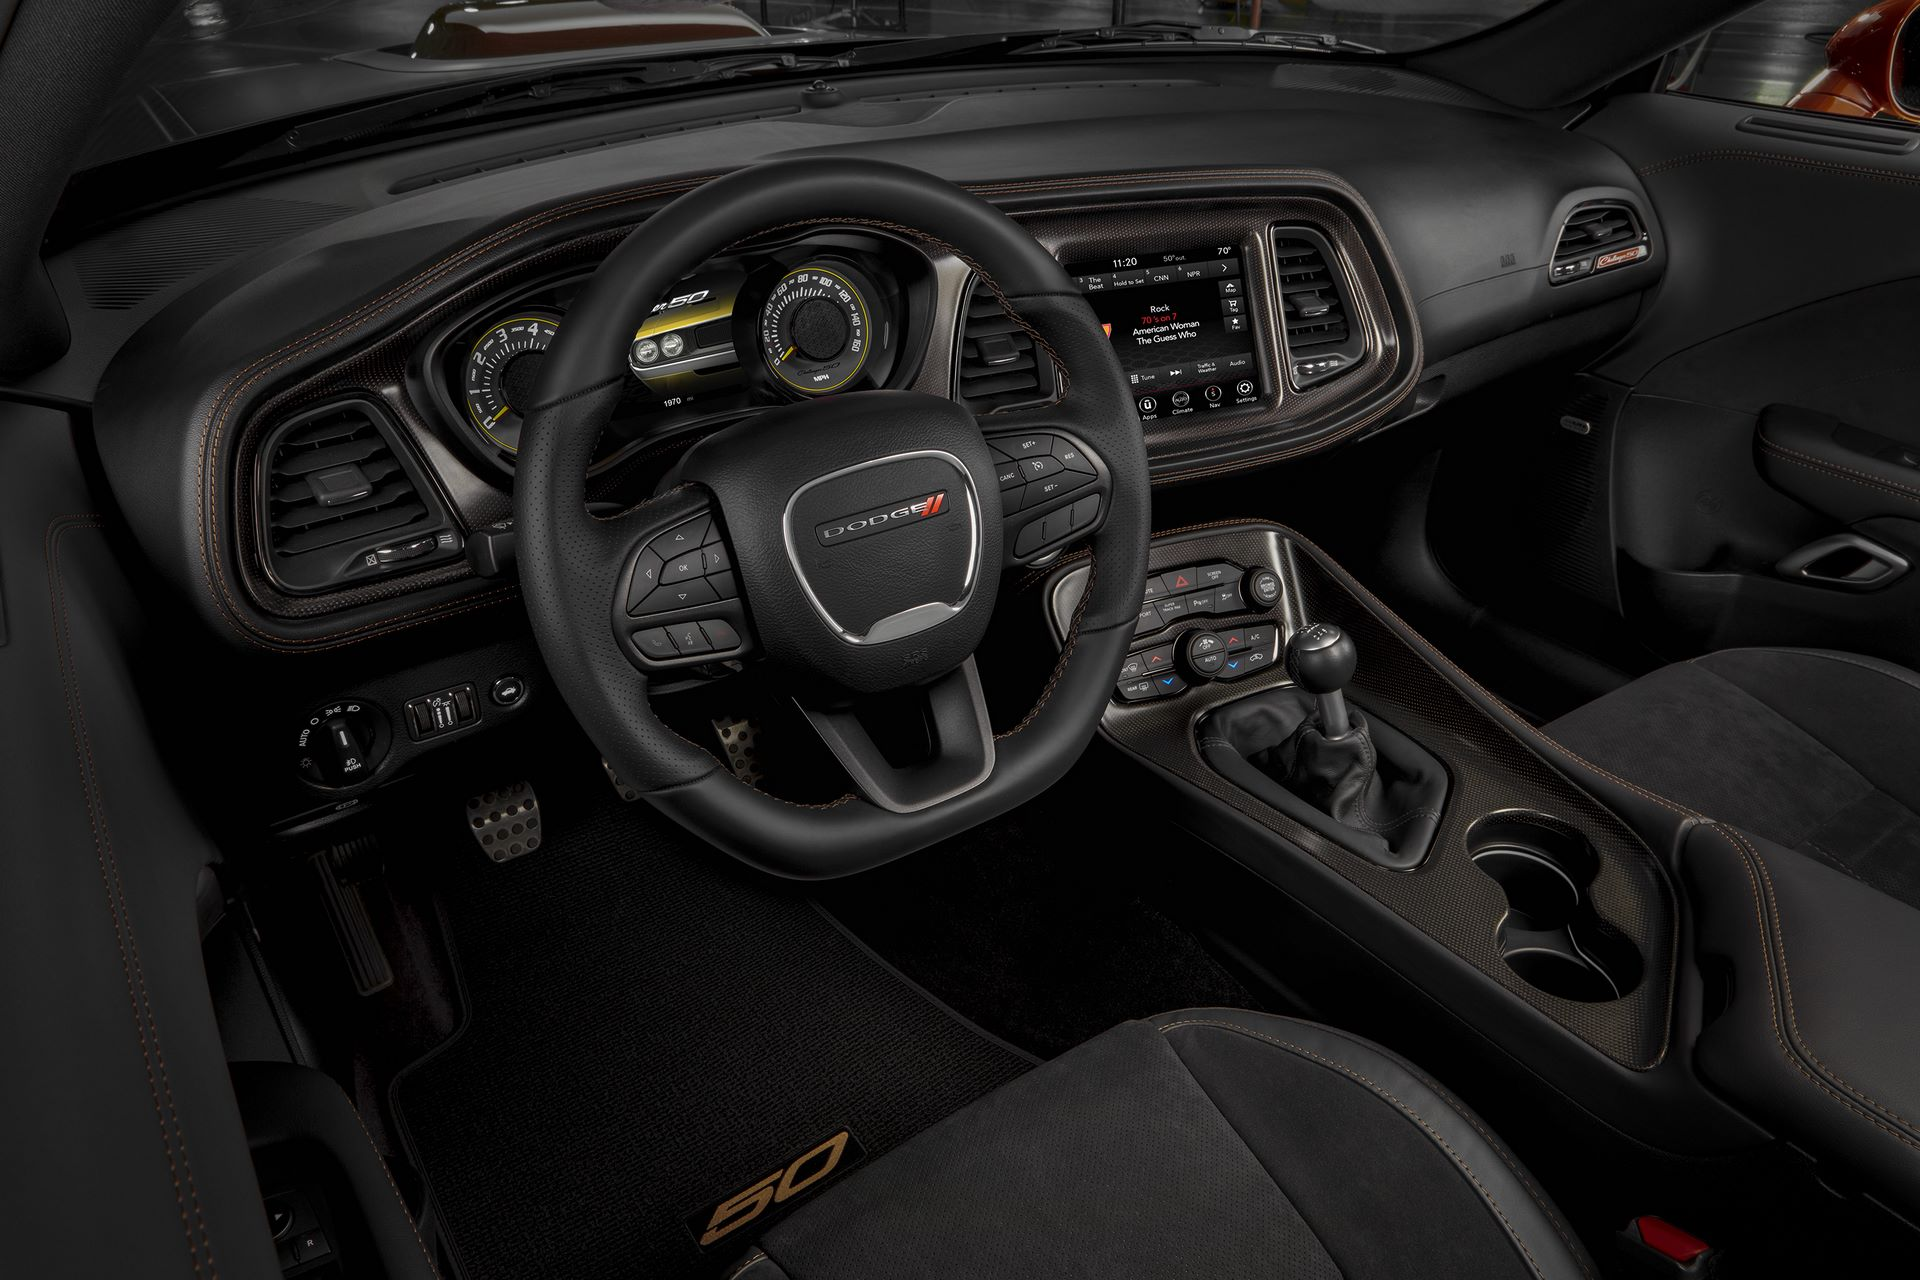 From the steering wheel to the instrument panel, startup screens, gauge faces, seat backs, door bolsters and floor mats, the 50th Anniversary theme extends into the Challenger's athletic interior.